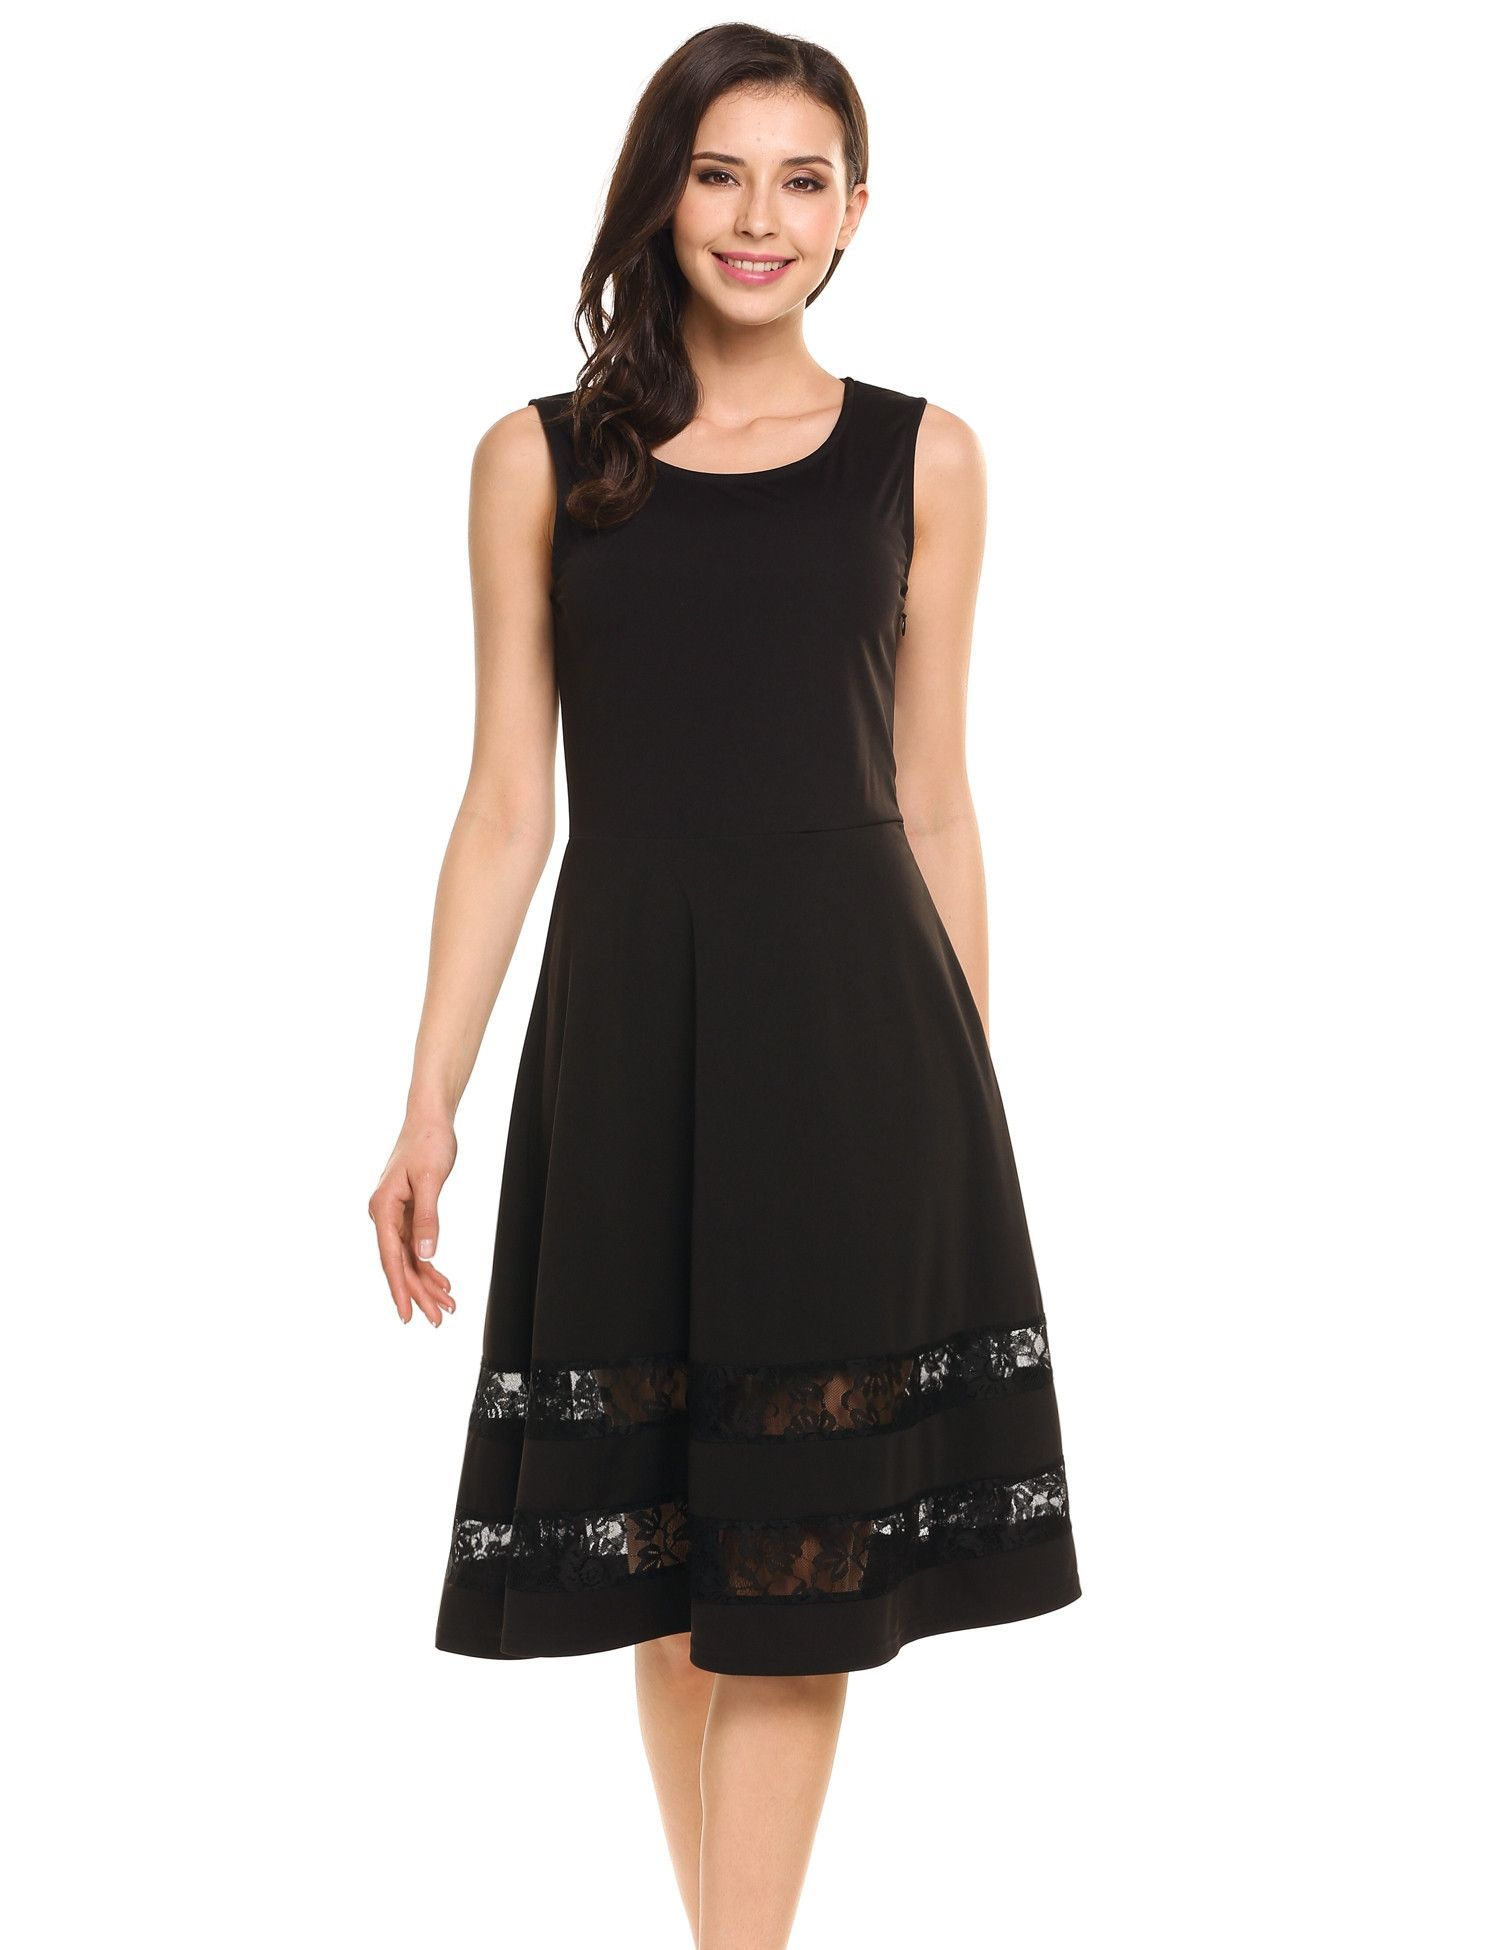 Black Sleeveless Lace Patchwork Fit and Flare A-Line Casual Dress